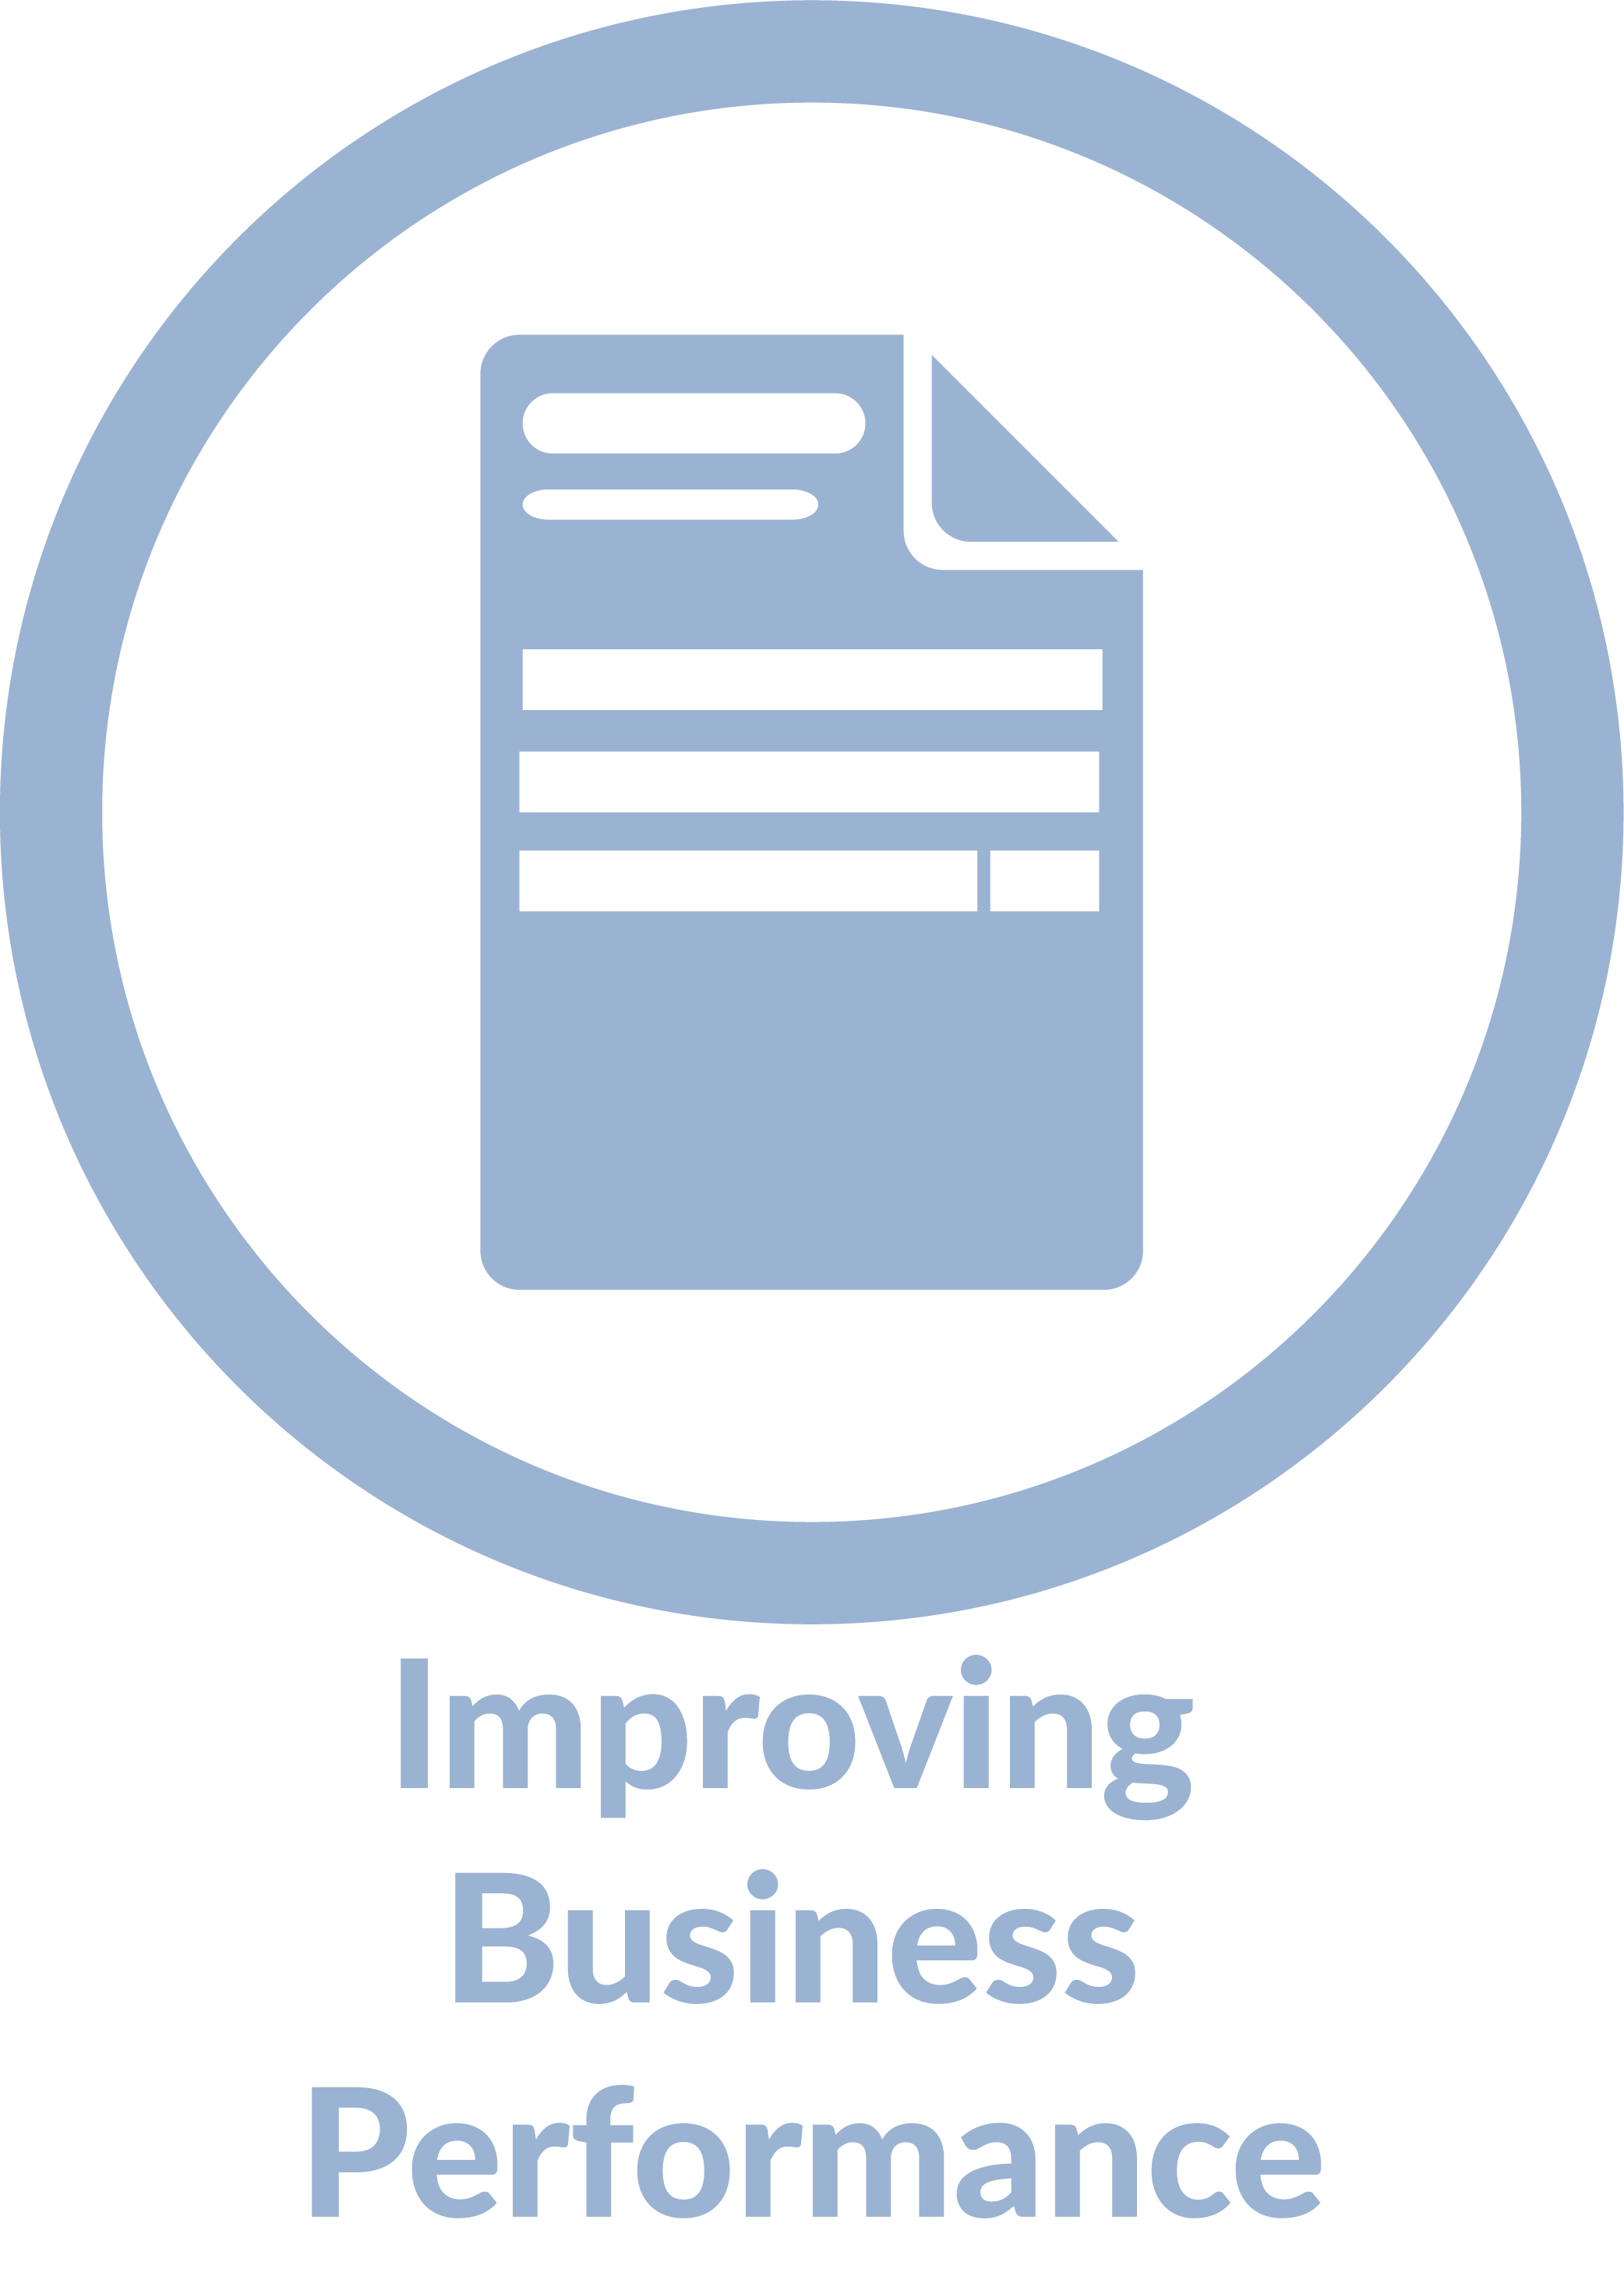 Super Admin logo and text Improving Business Performance